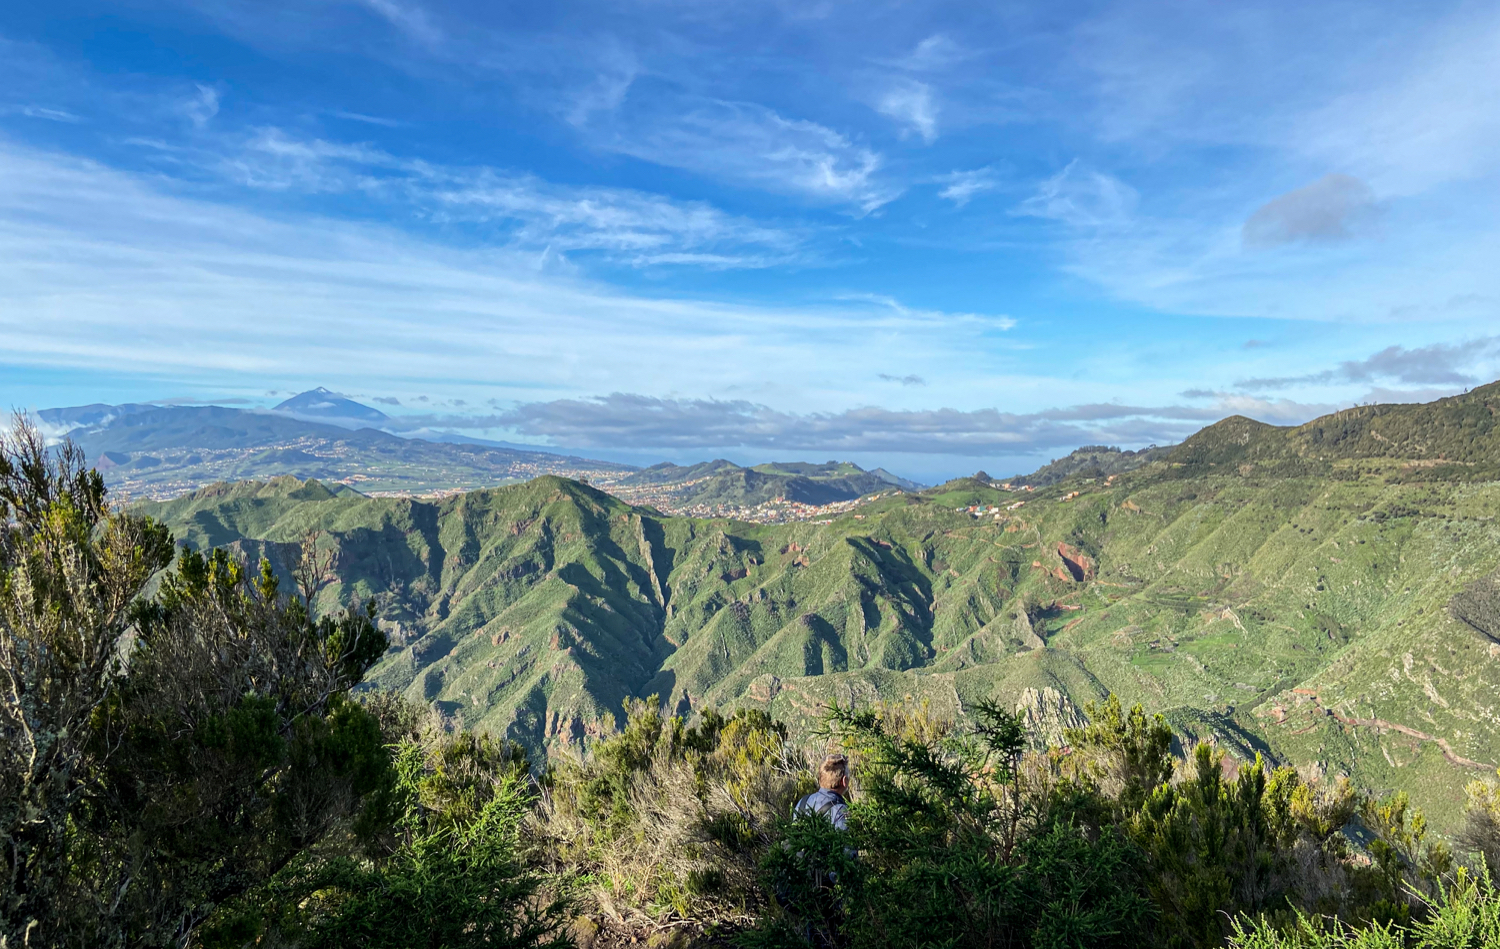 View over the Anaga Heights from the hiking trail - near Pico del Ingles